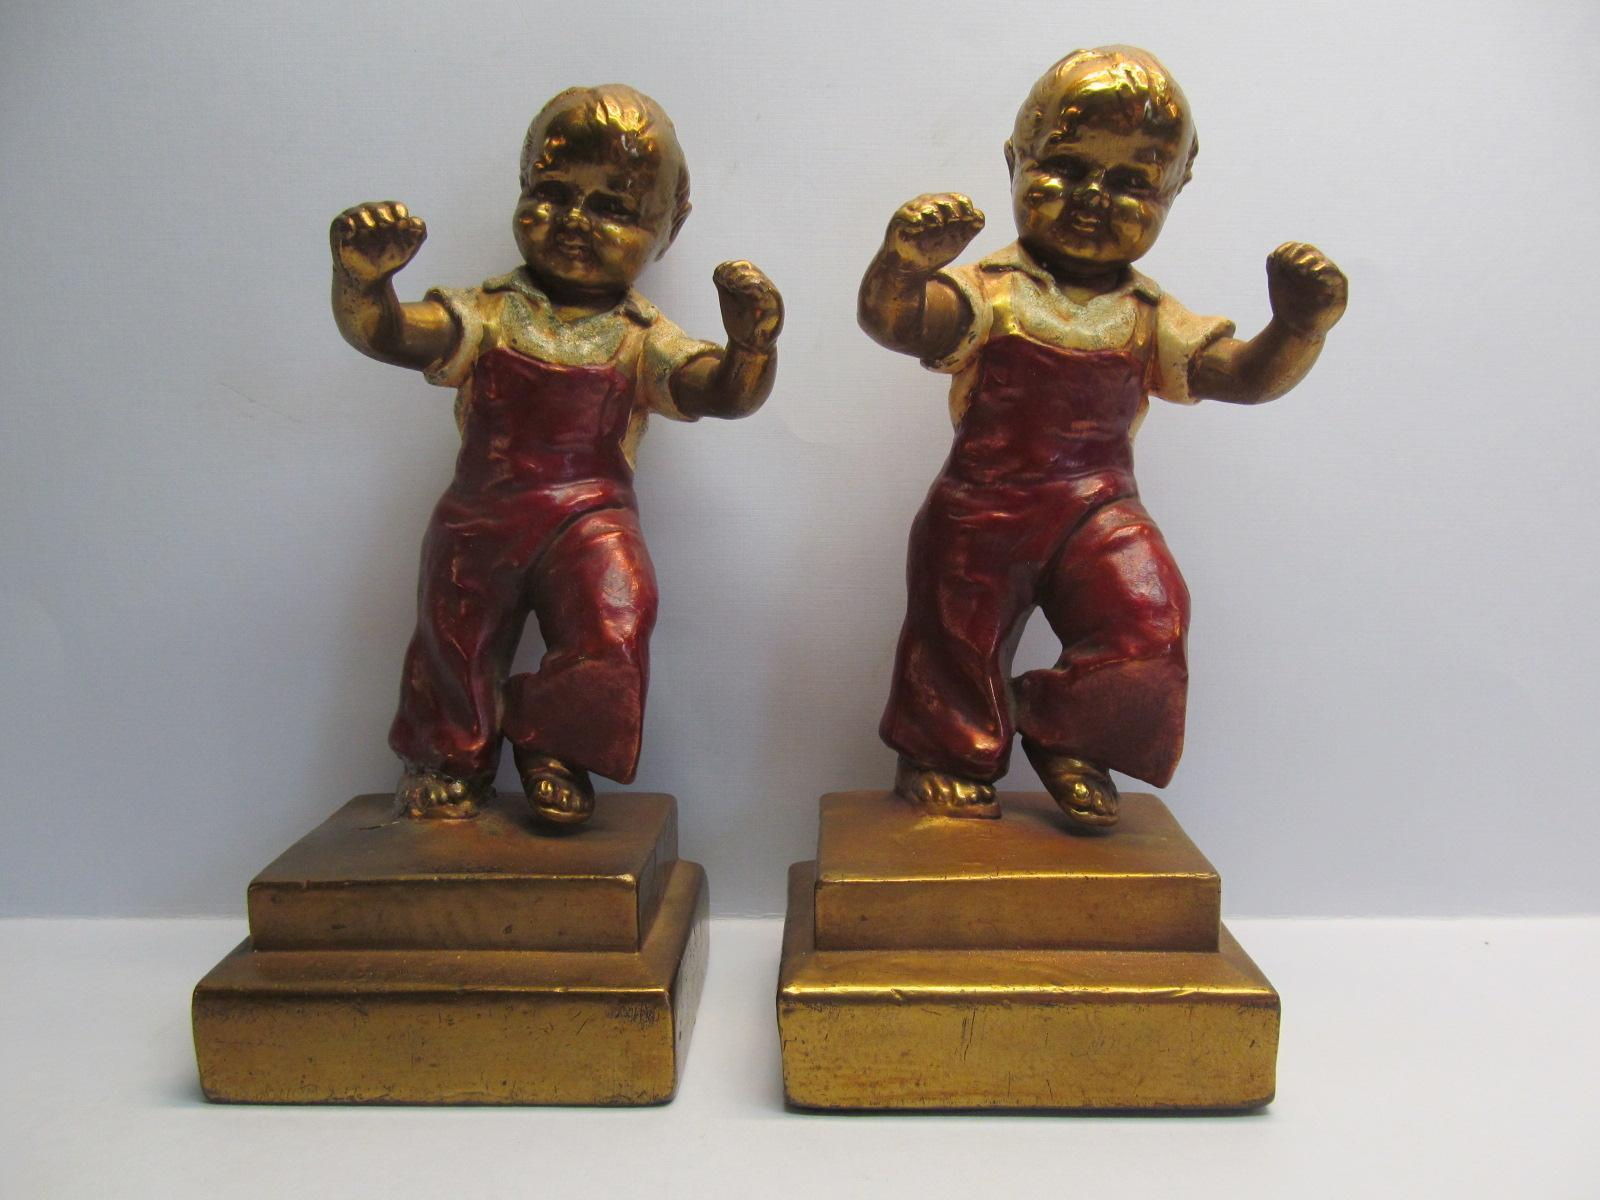 Bookends by charles jenings boys jumping armor bronze 1920 c from artgate on ruby lane - Armor bronze bookends ...